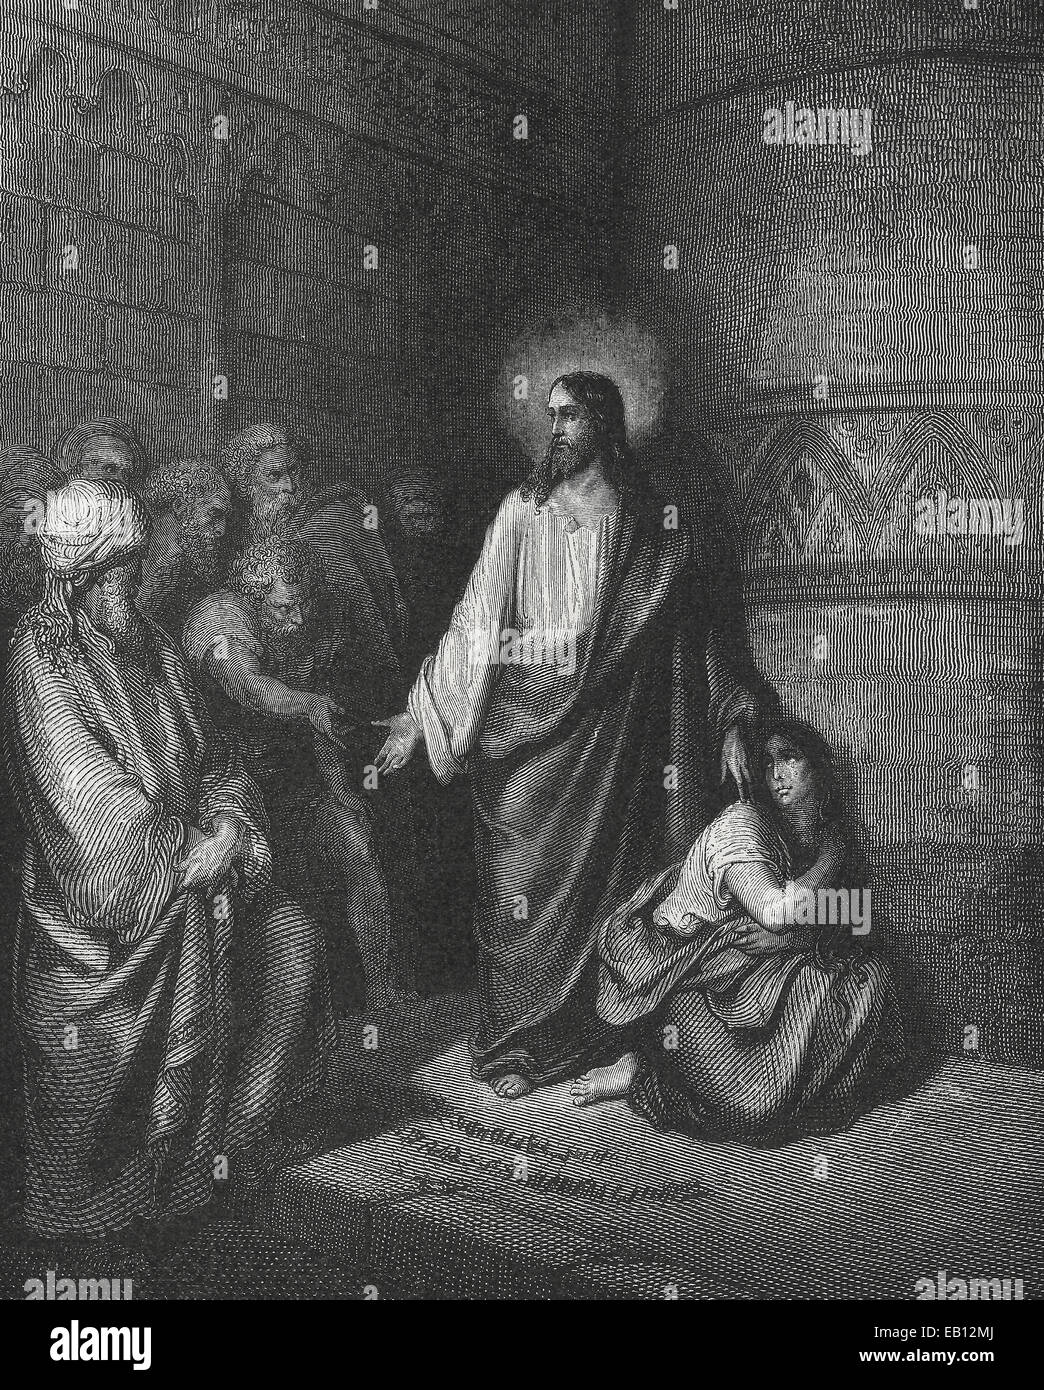 Jesus with the woman caught in adultery - Stock Image